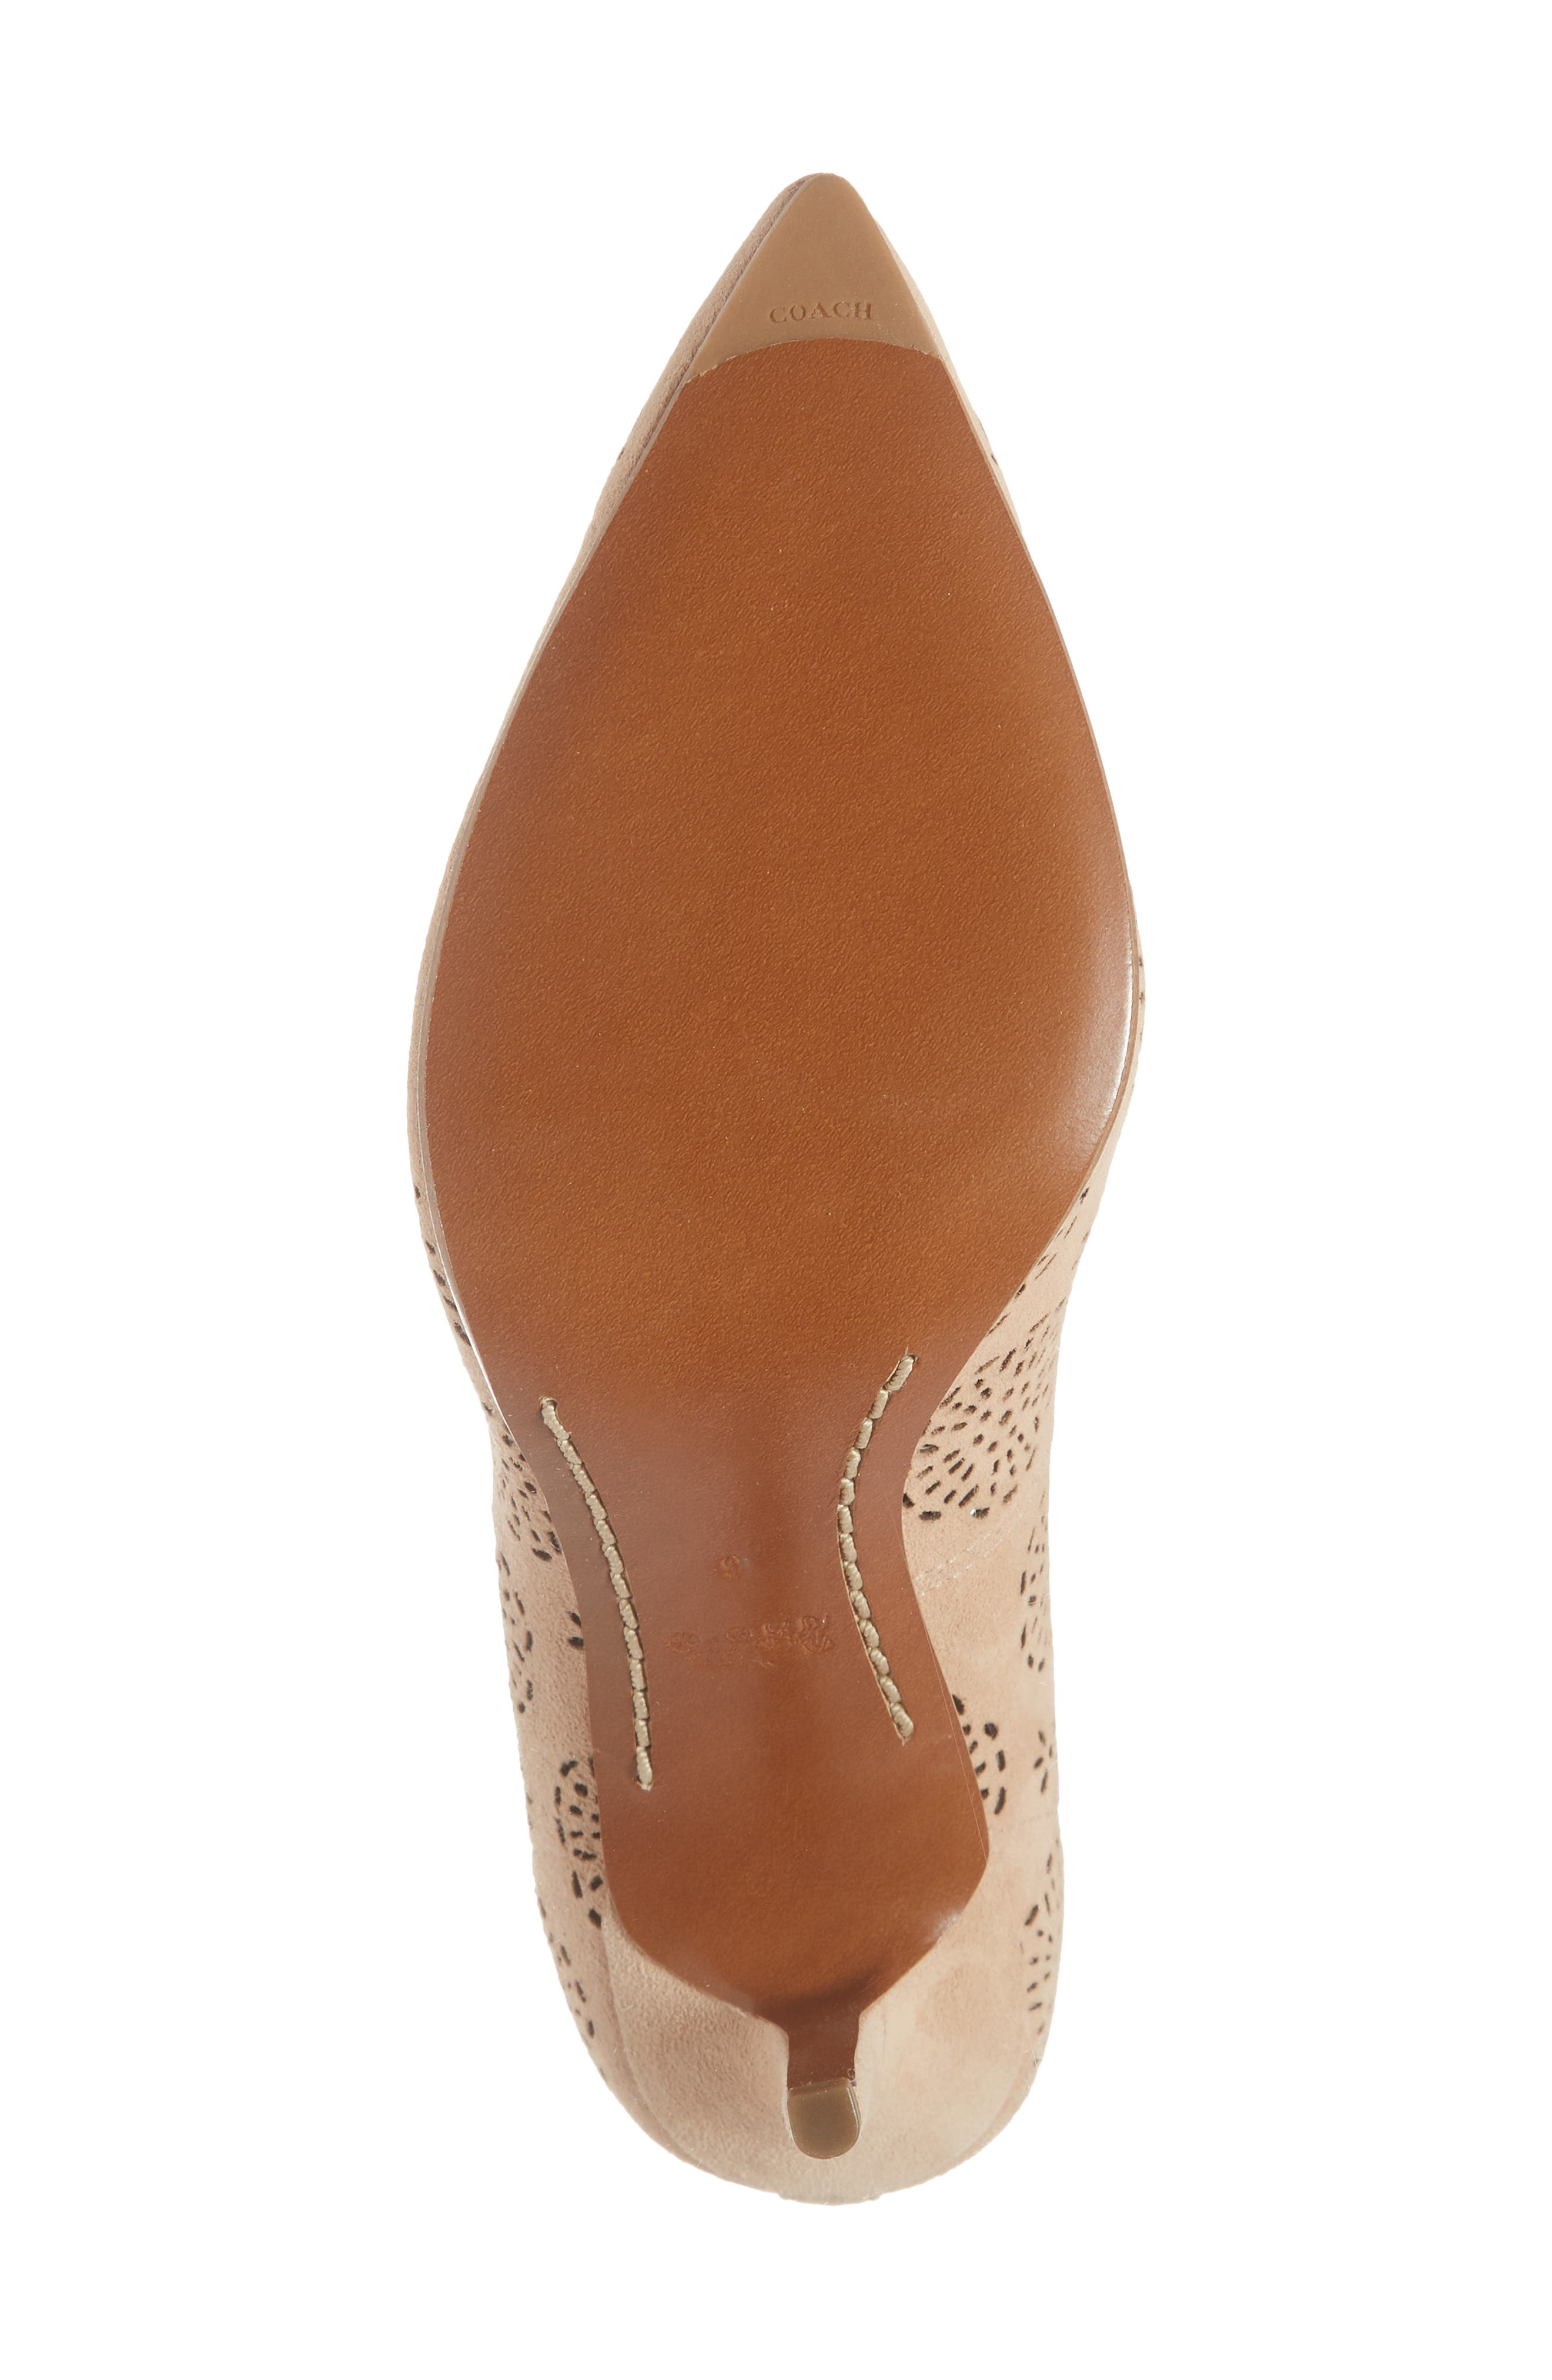 Waverly Tea Rose Perforated Pump,                             Alternate thumbnail 6, color,                             259